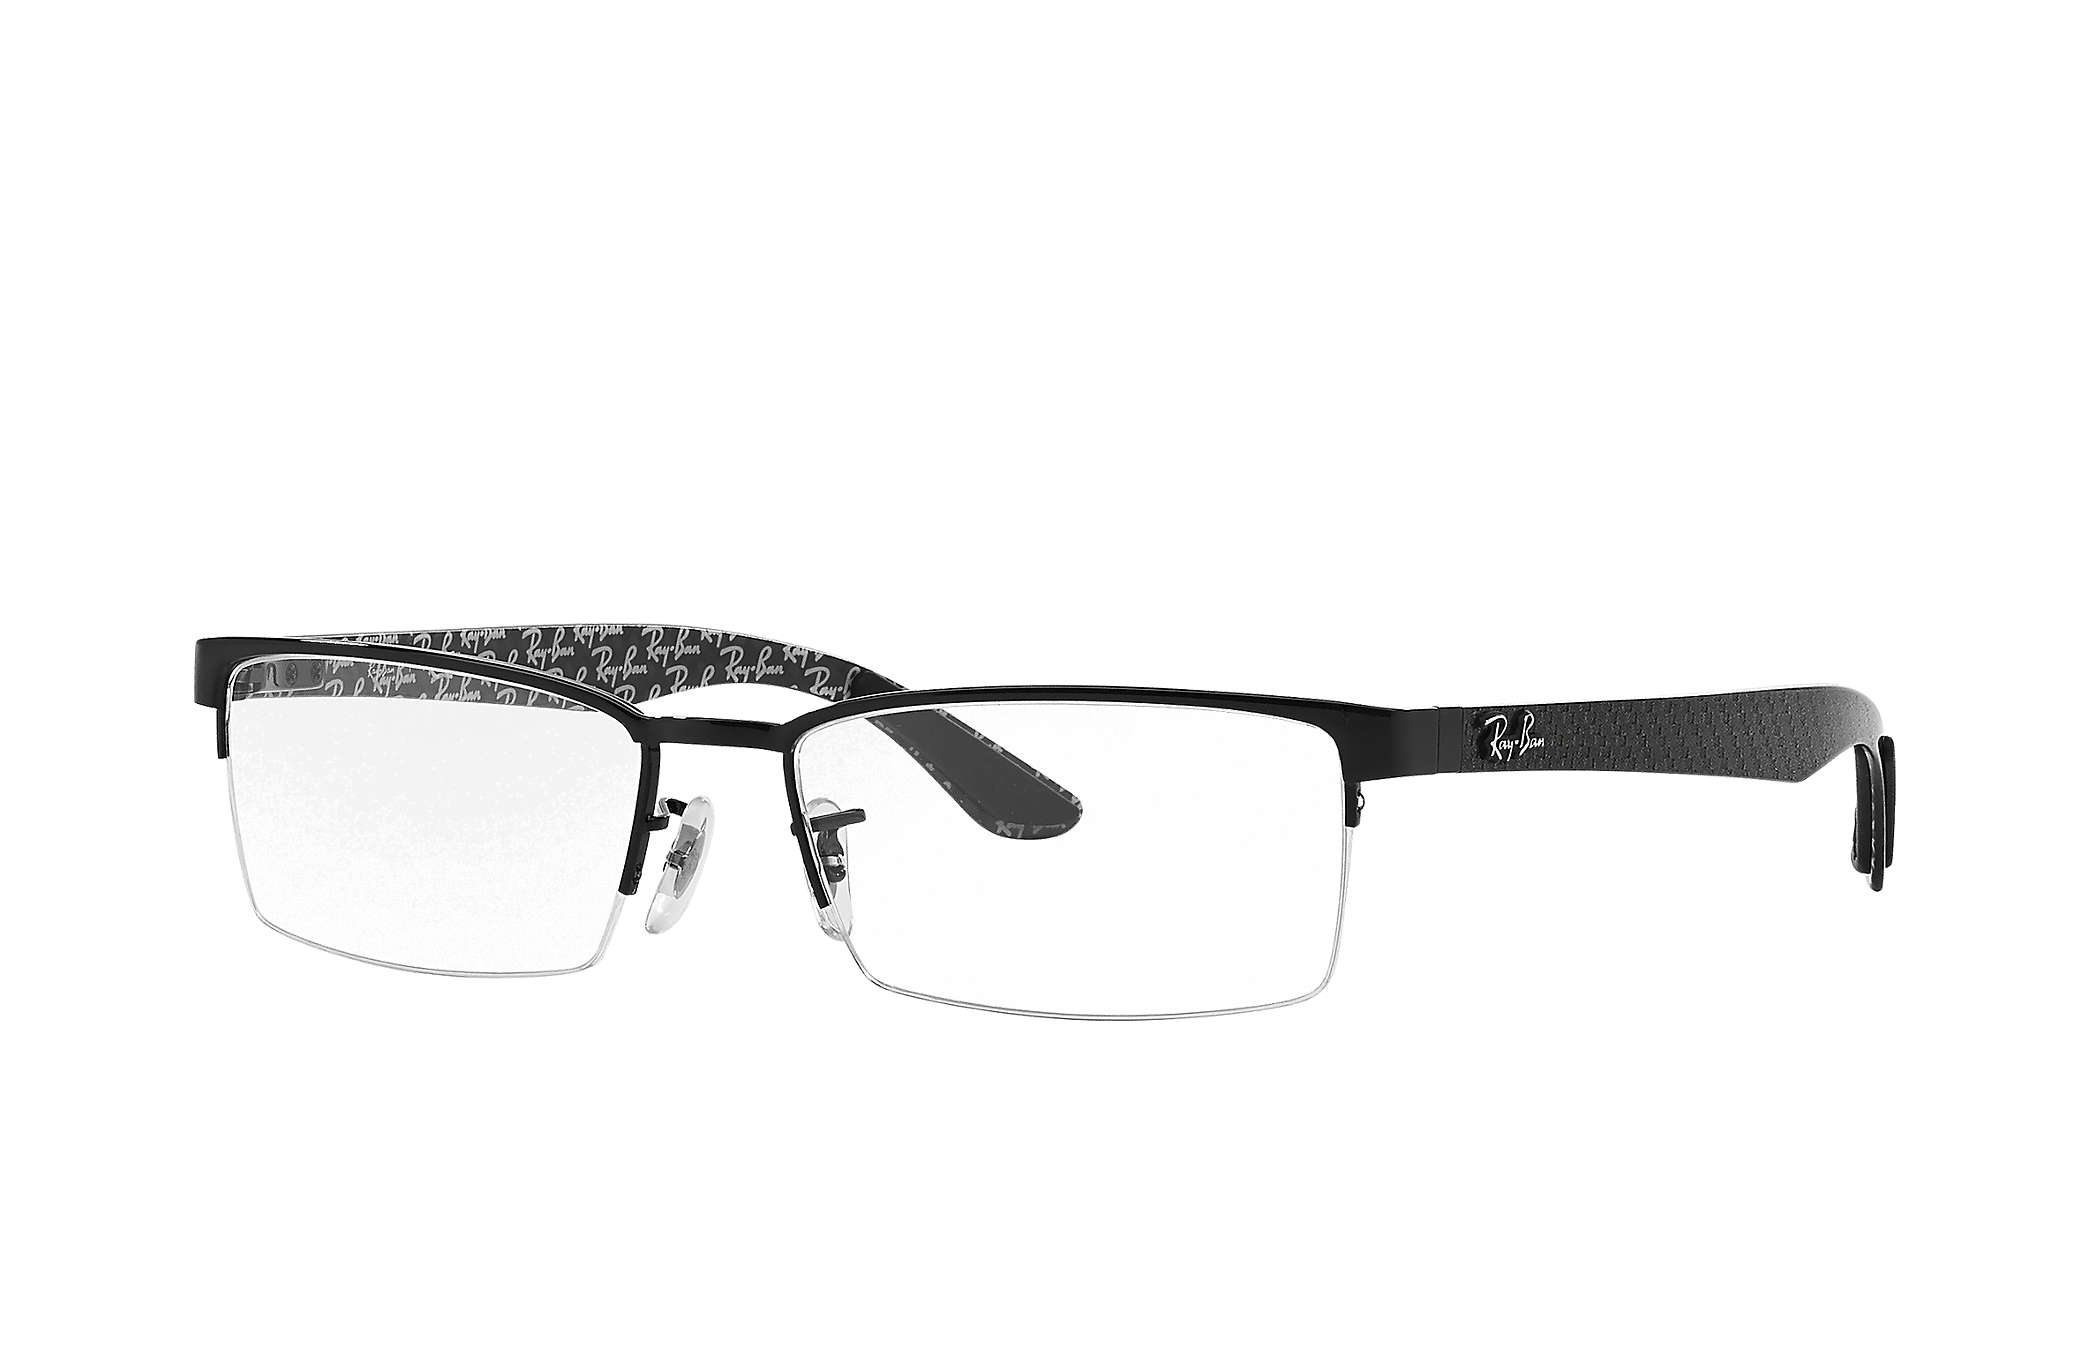 3a4f6e9a8f Lyst - Ray-Ban Rb8412 in Black for Men